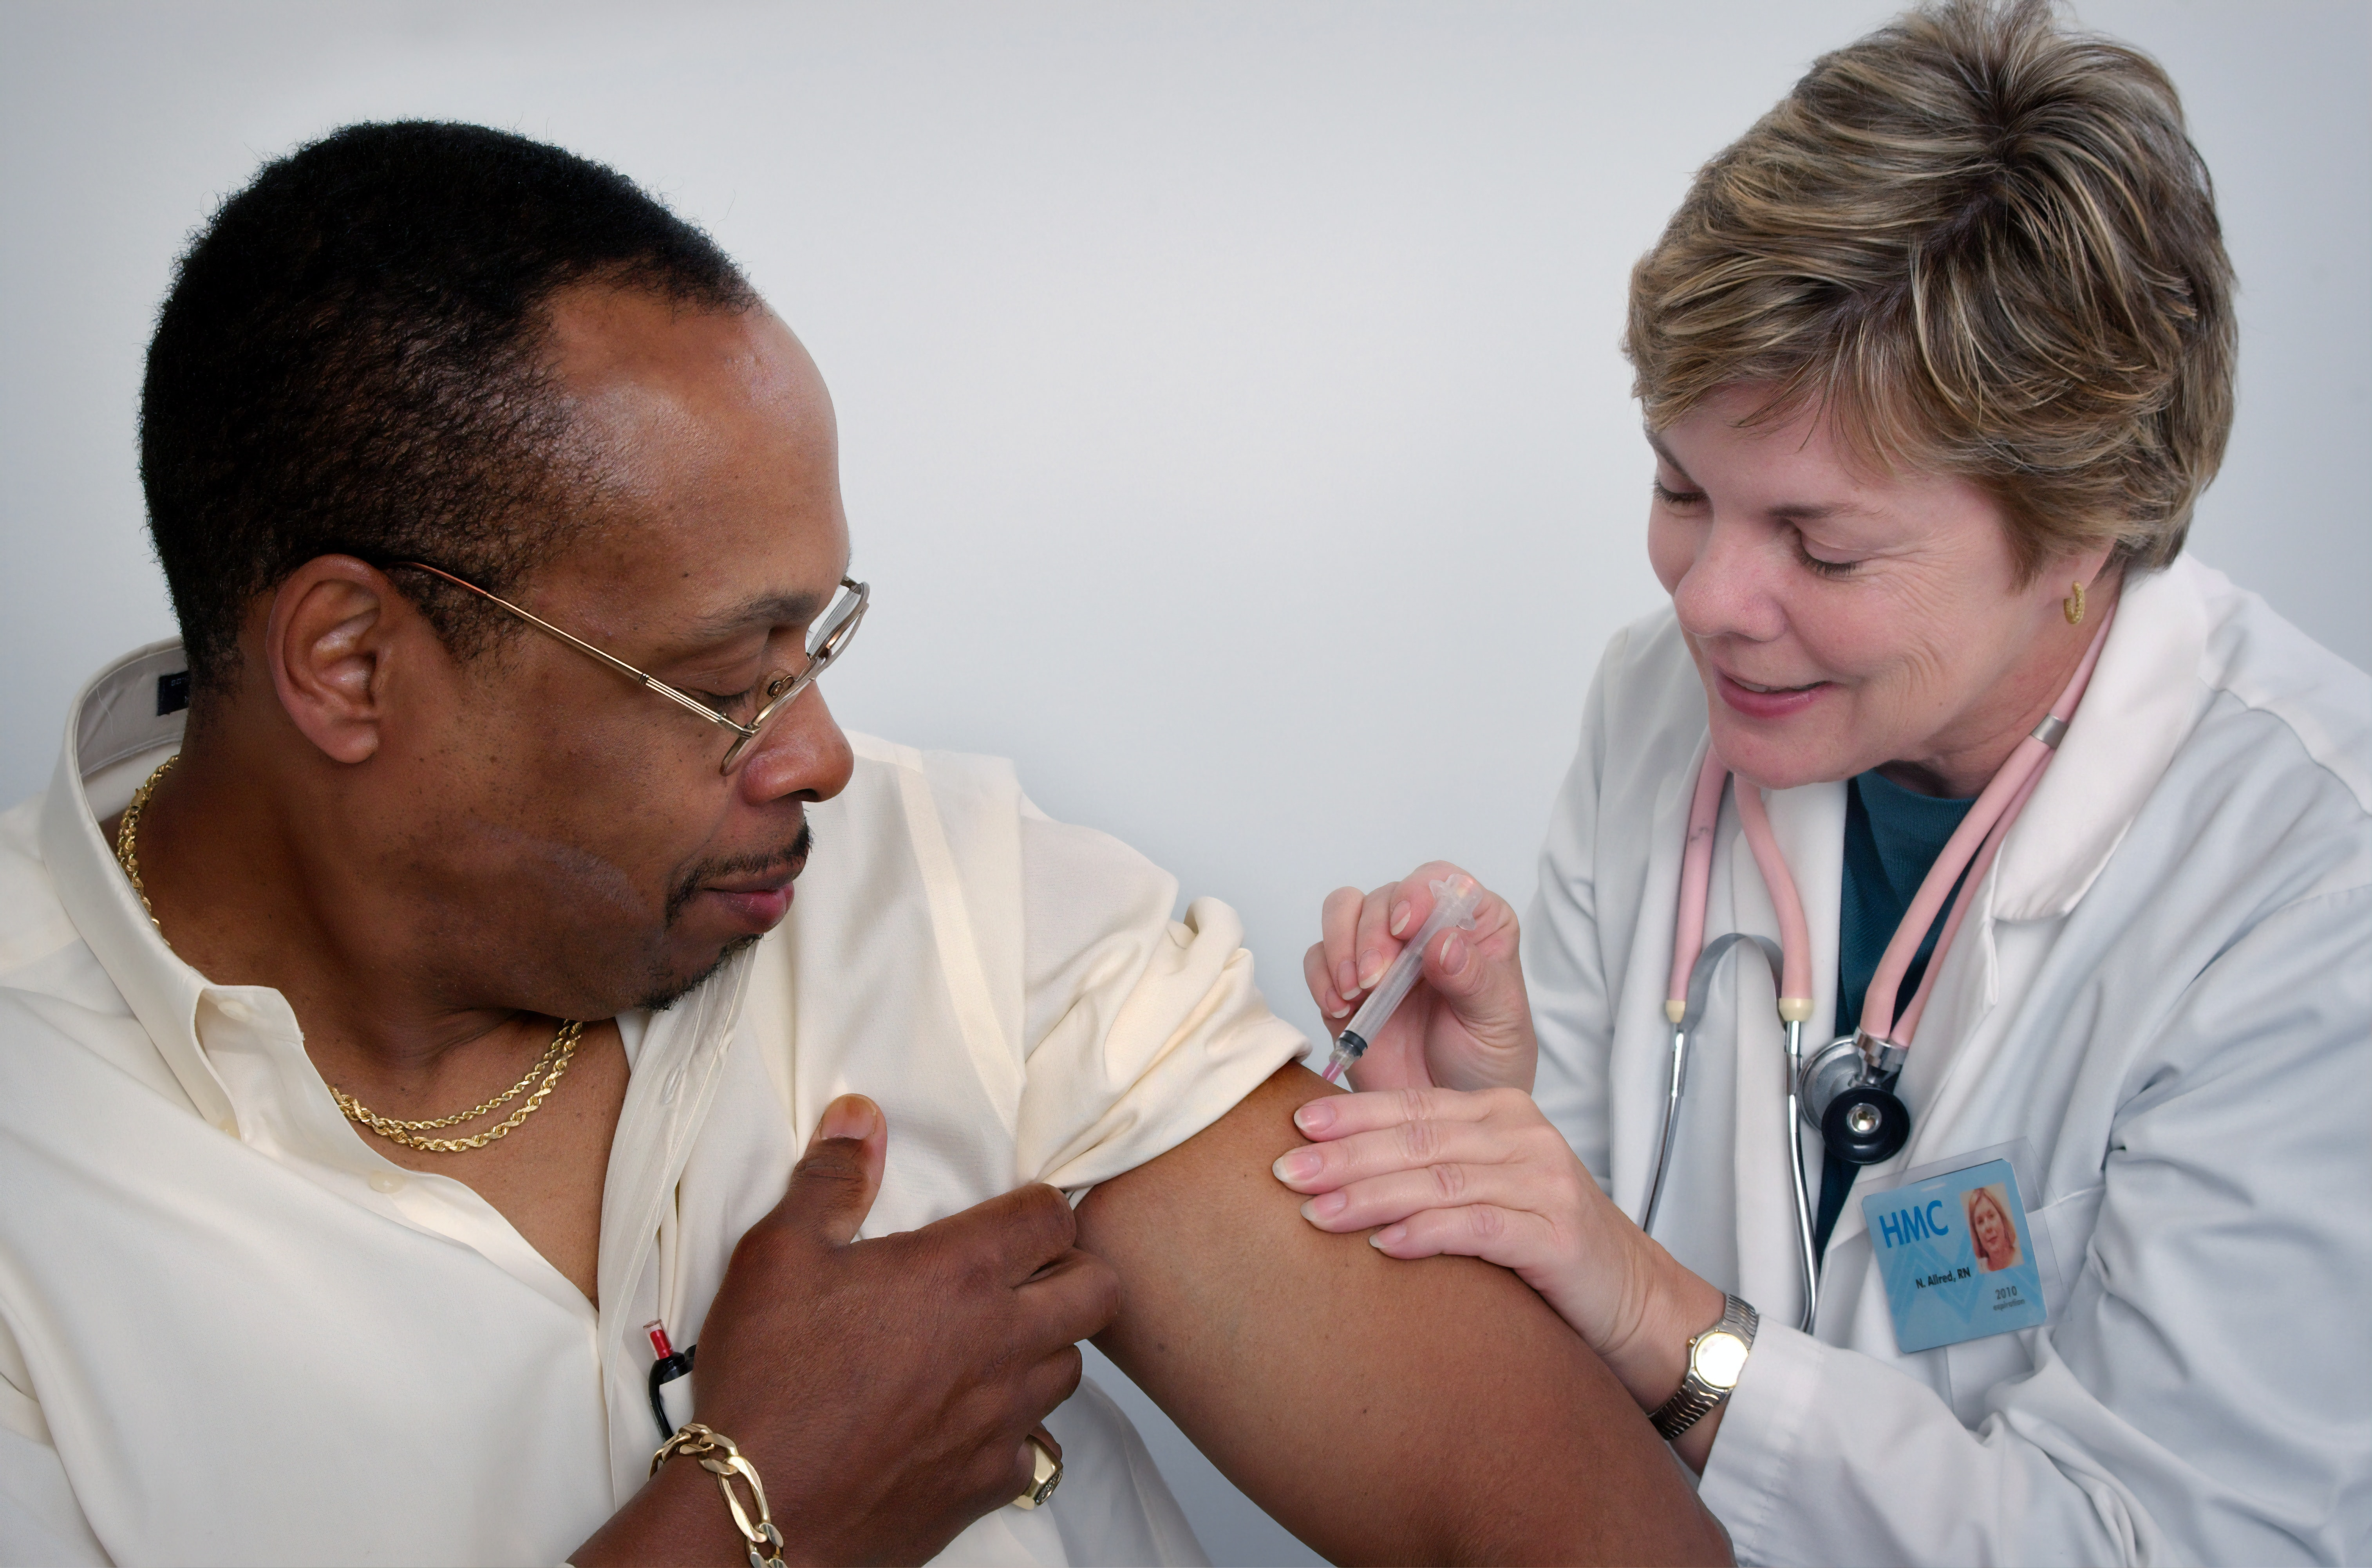 Patients of women doctors more likely to be vaccinated against the flu